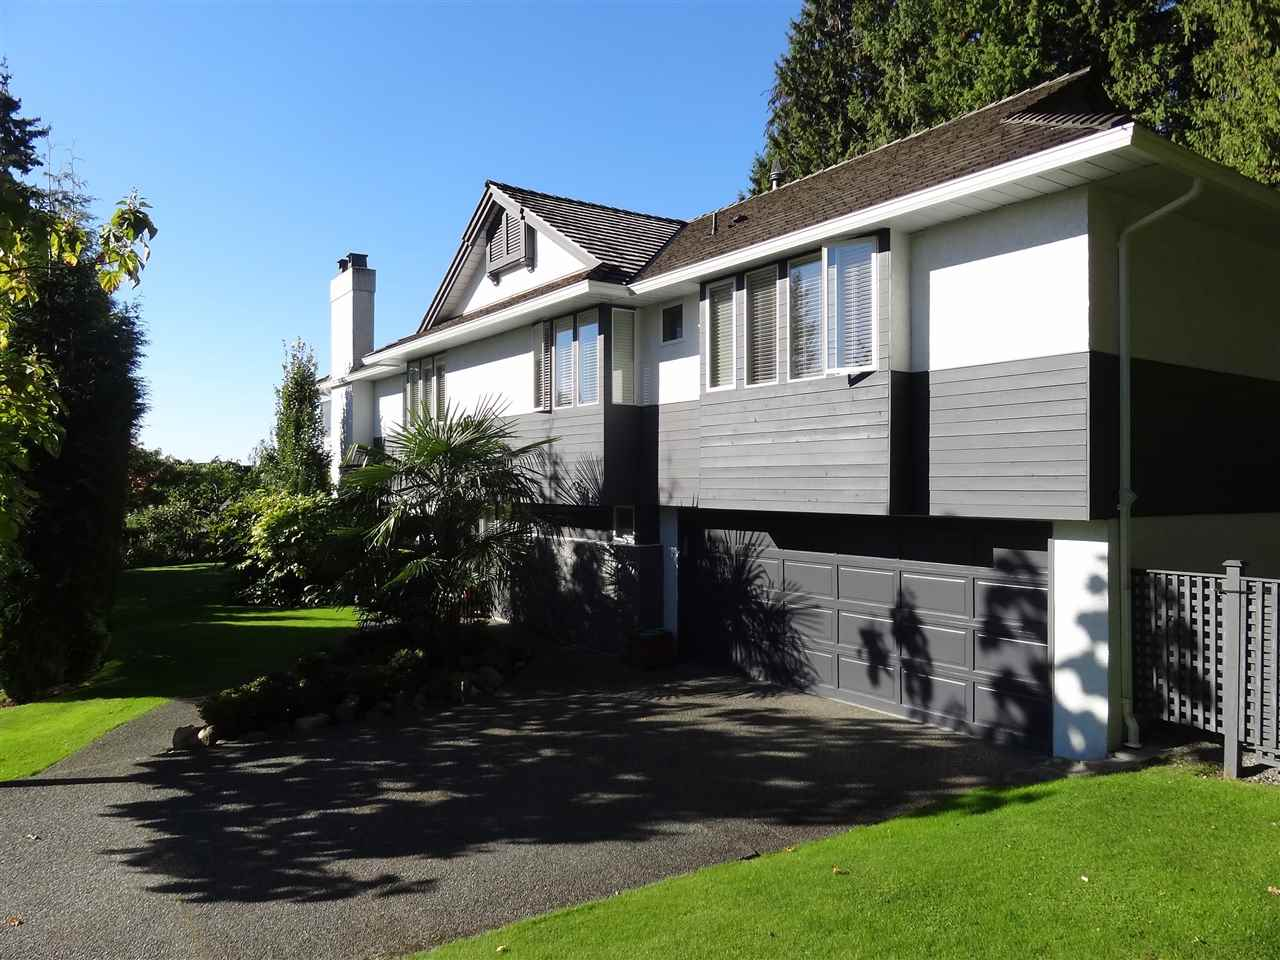 Main Photo: 2141 MOODY Avenue in North Vancouver: Boulevard House for sale : MLS® # R2201820